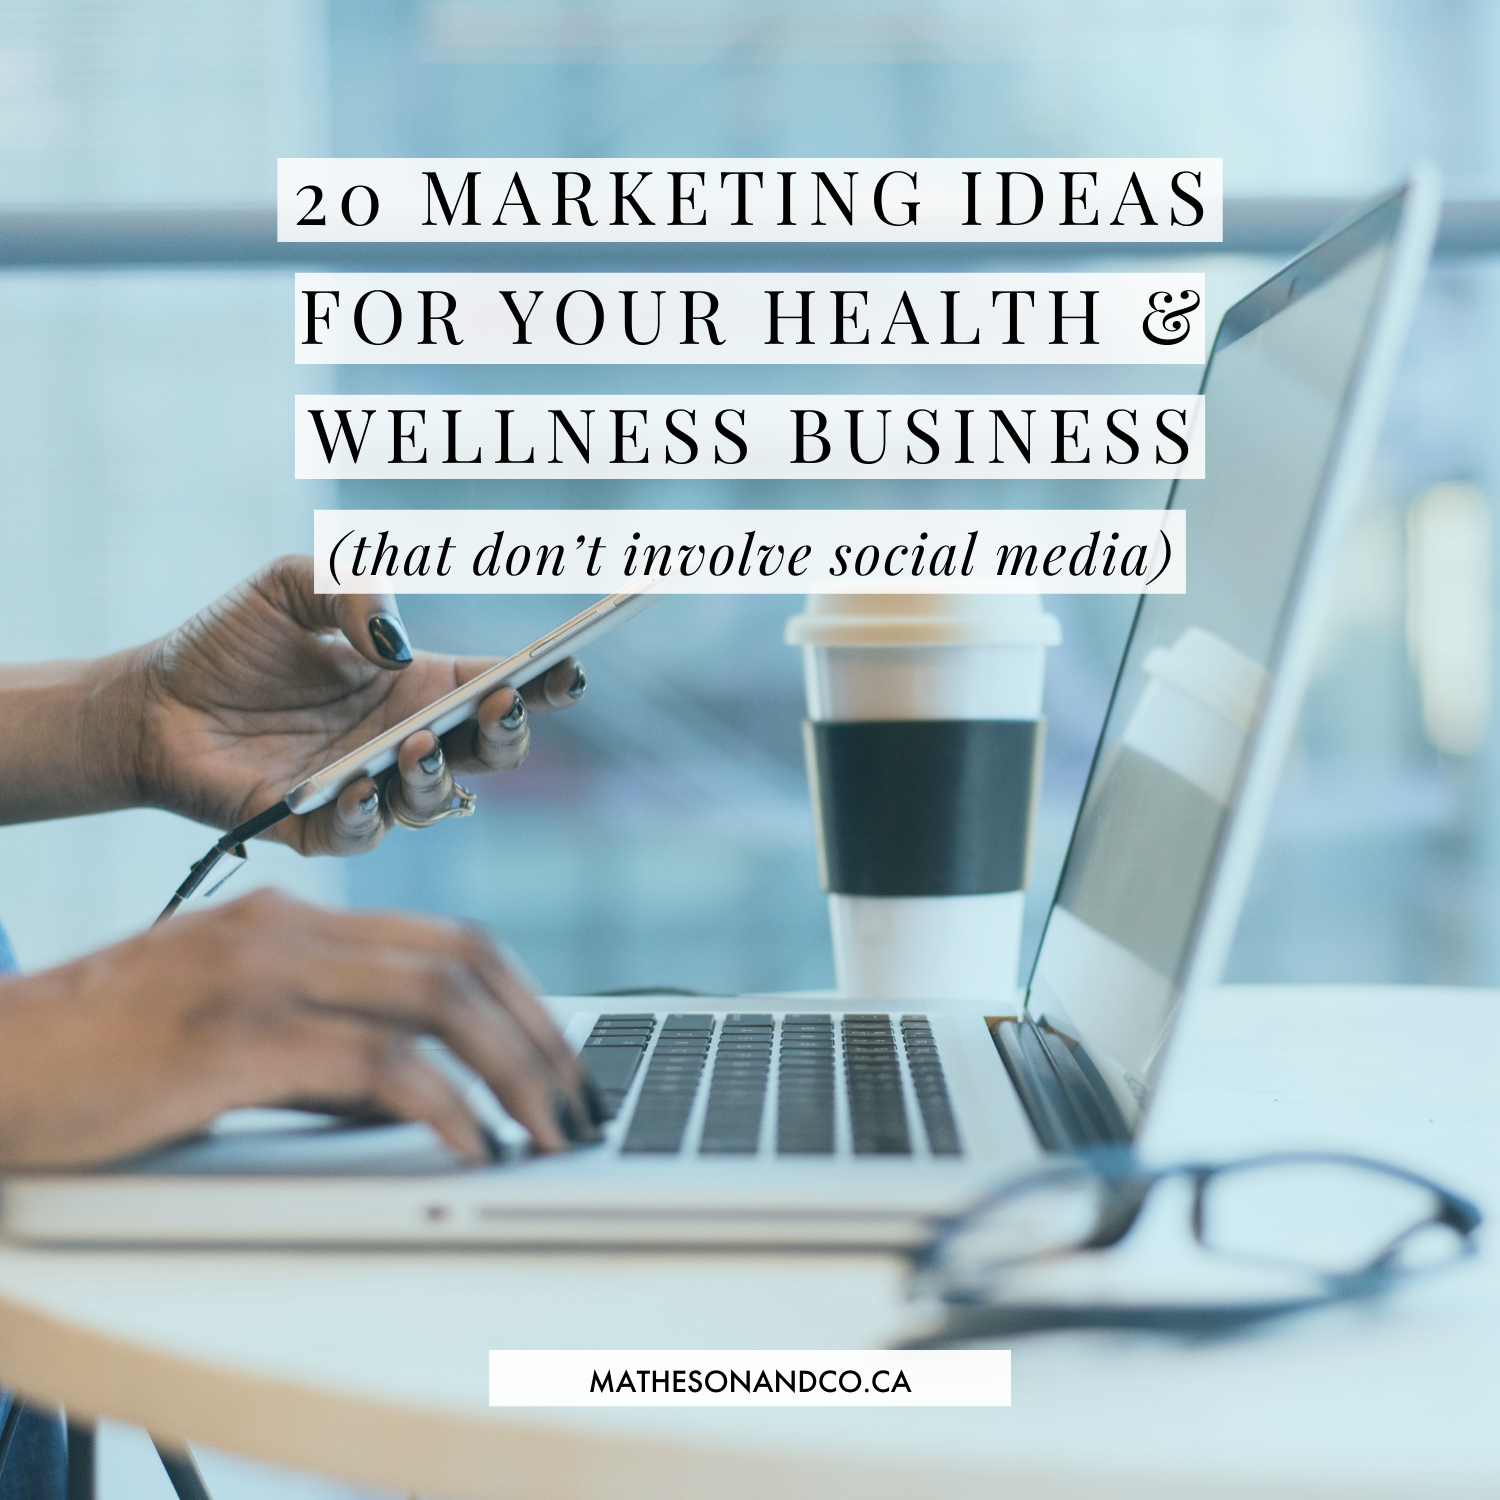 20 Marketing Ideas For Your Health & Wellness Business (that don't involve social media)